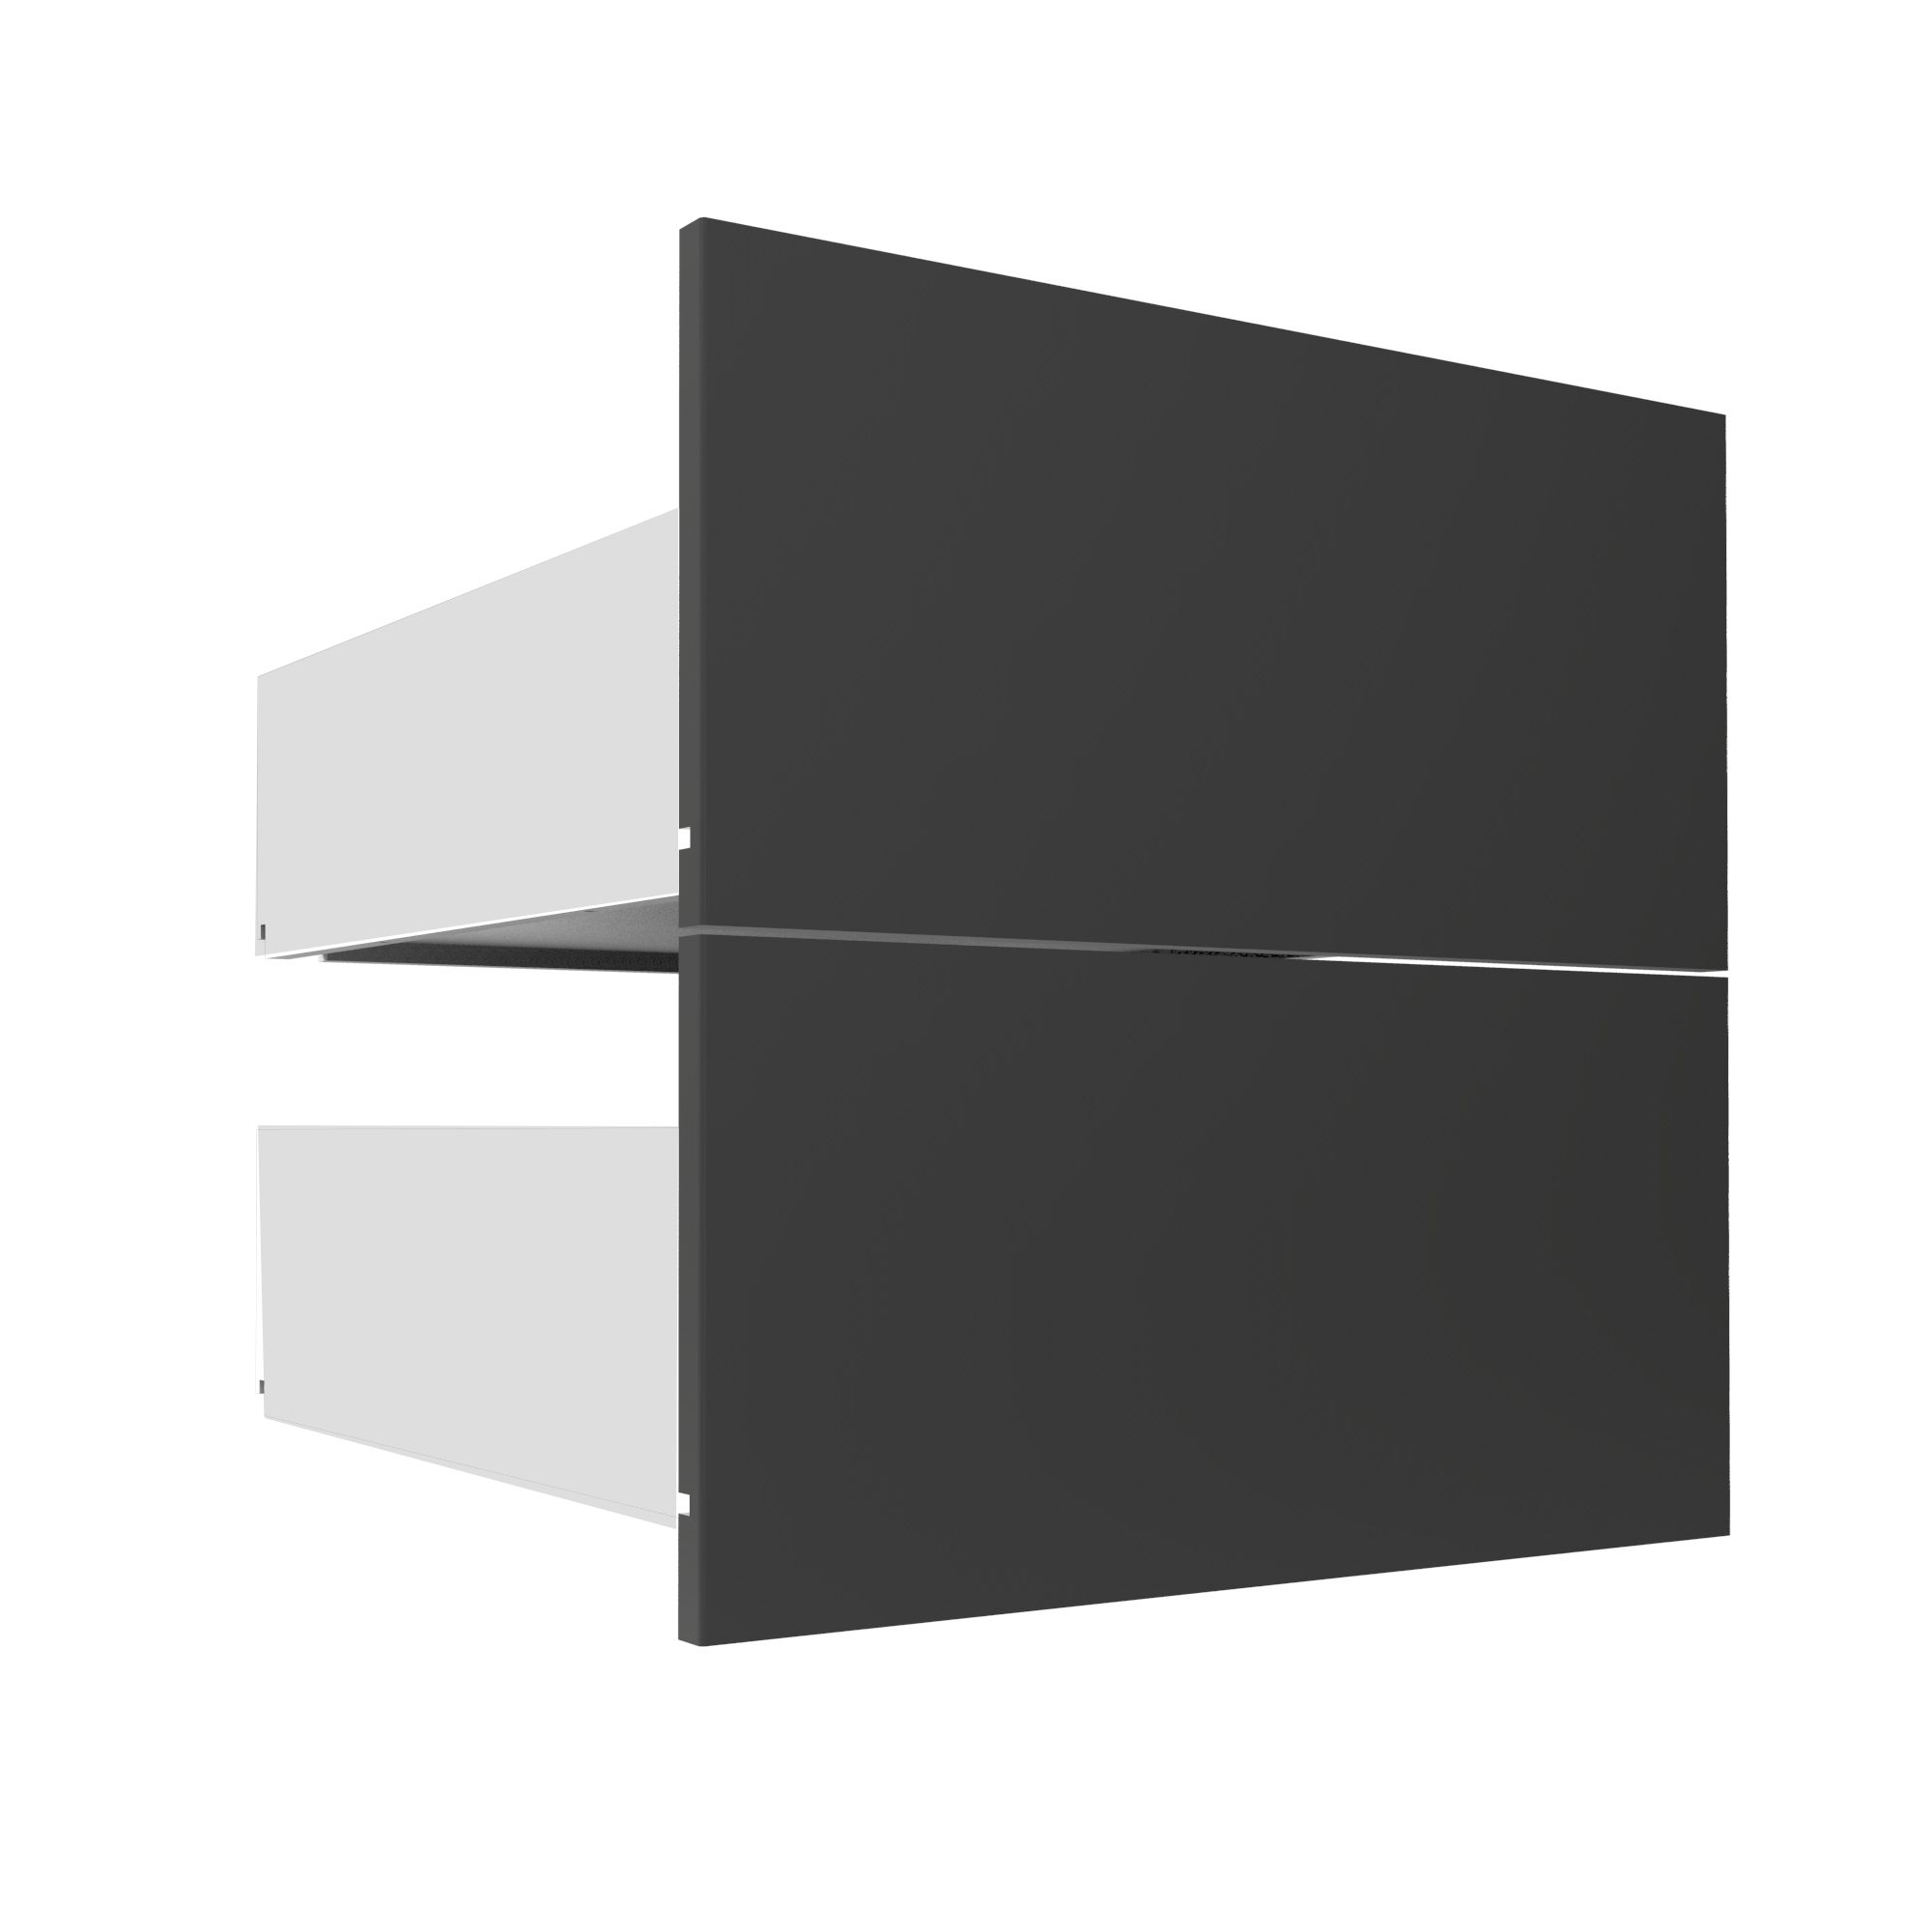 Darwin Modular Anthracite External Drawers (w) 500mm (d) 514mm, Pack Of 2